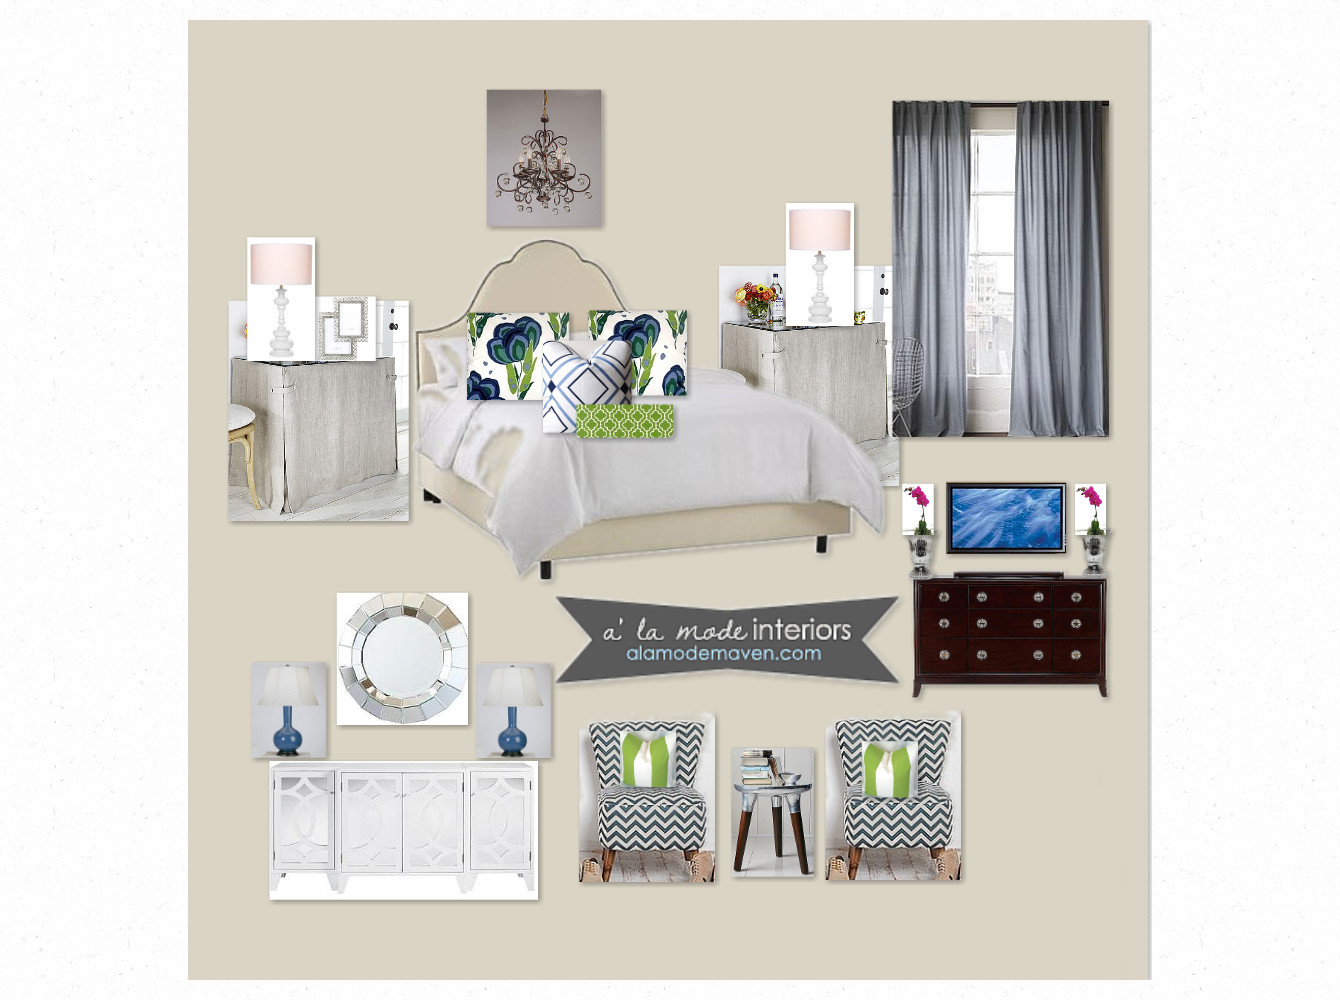 alamode Navy and Green Master Bedroom E Design